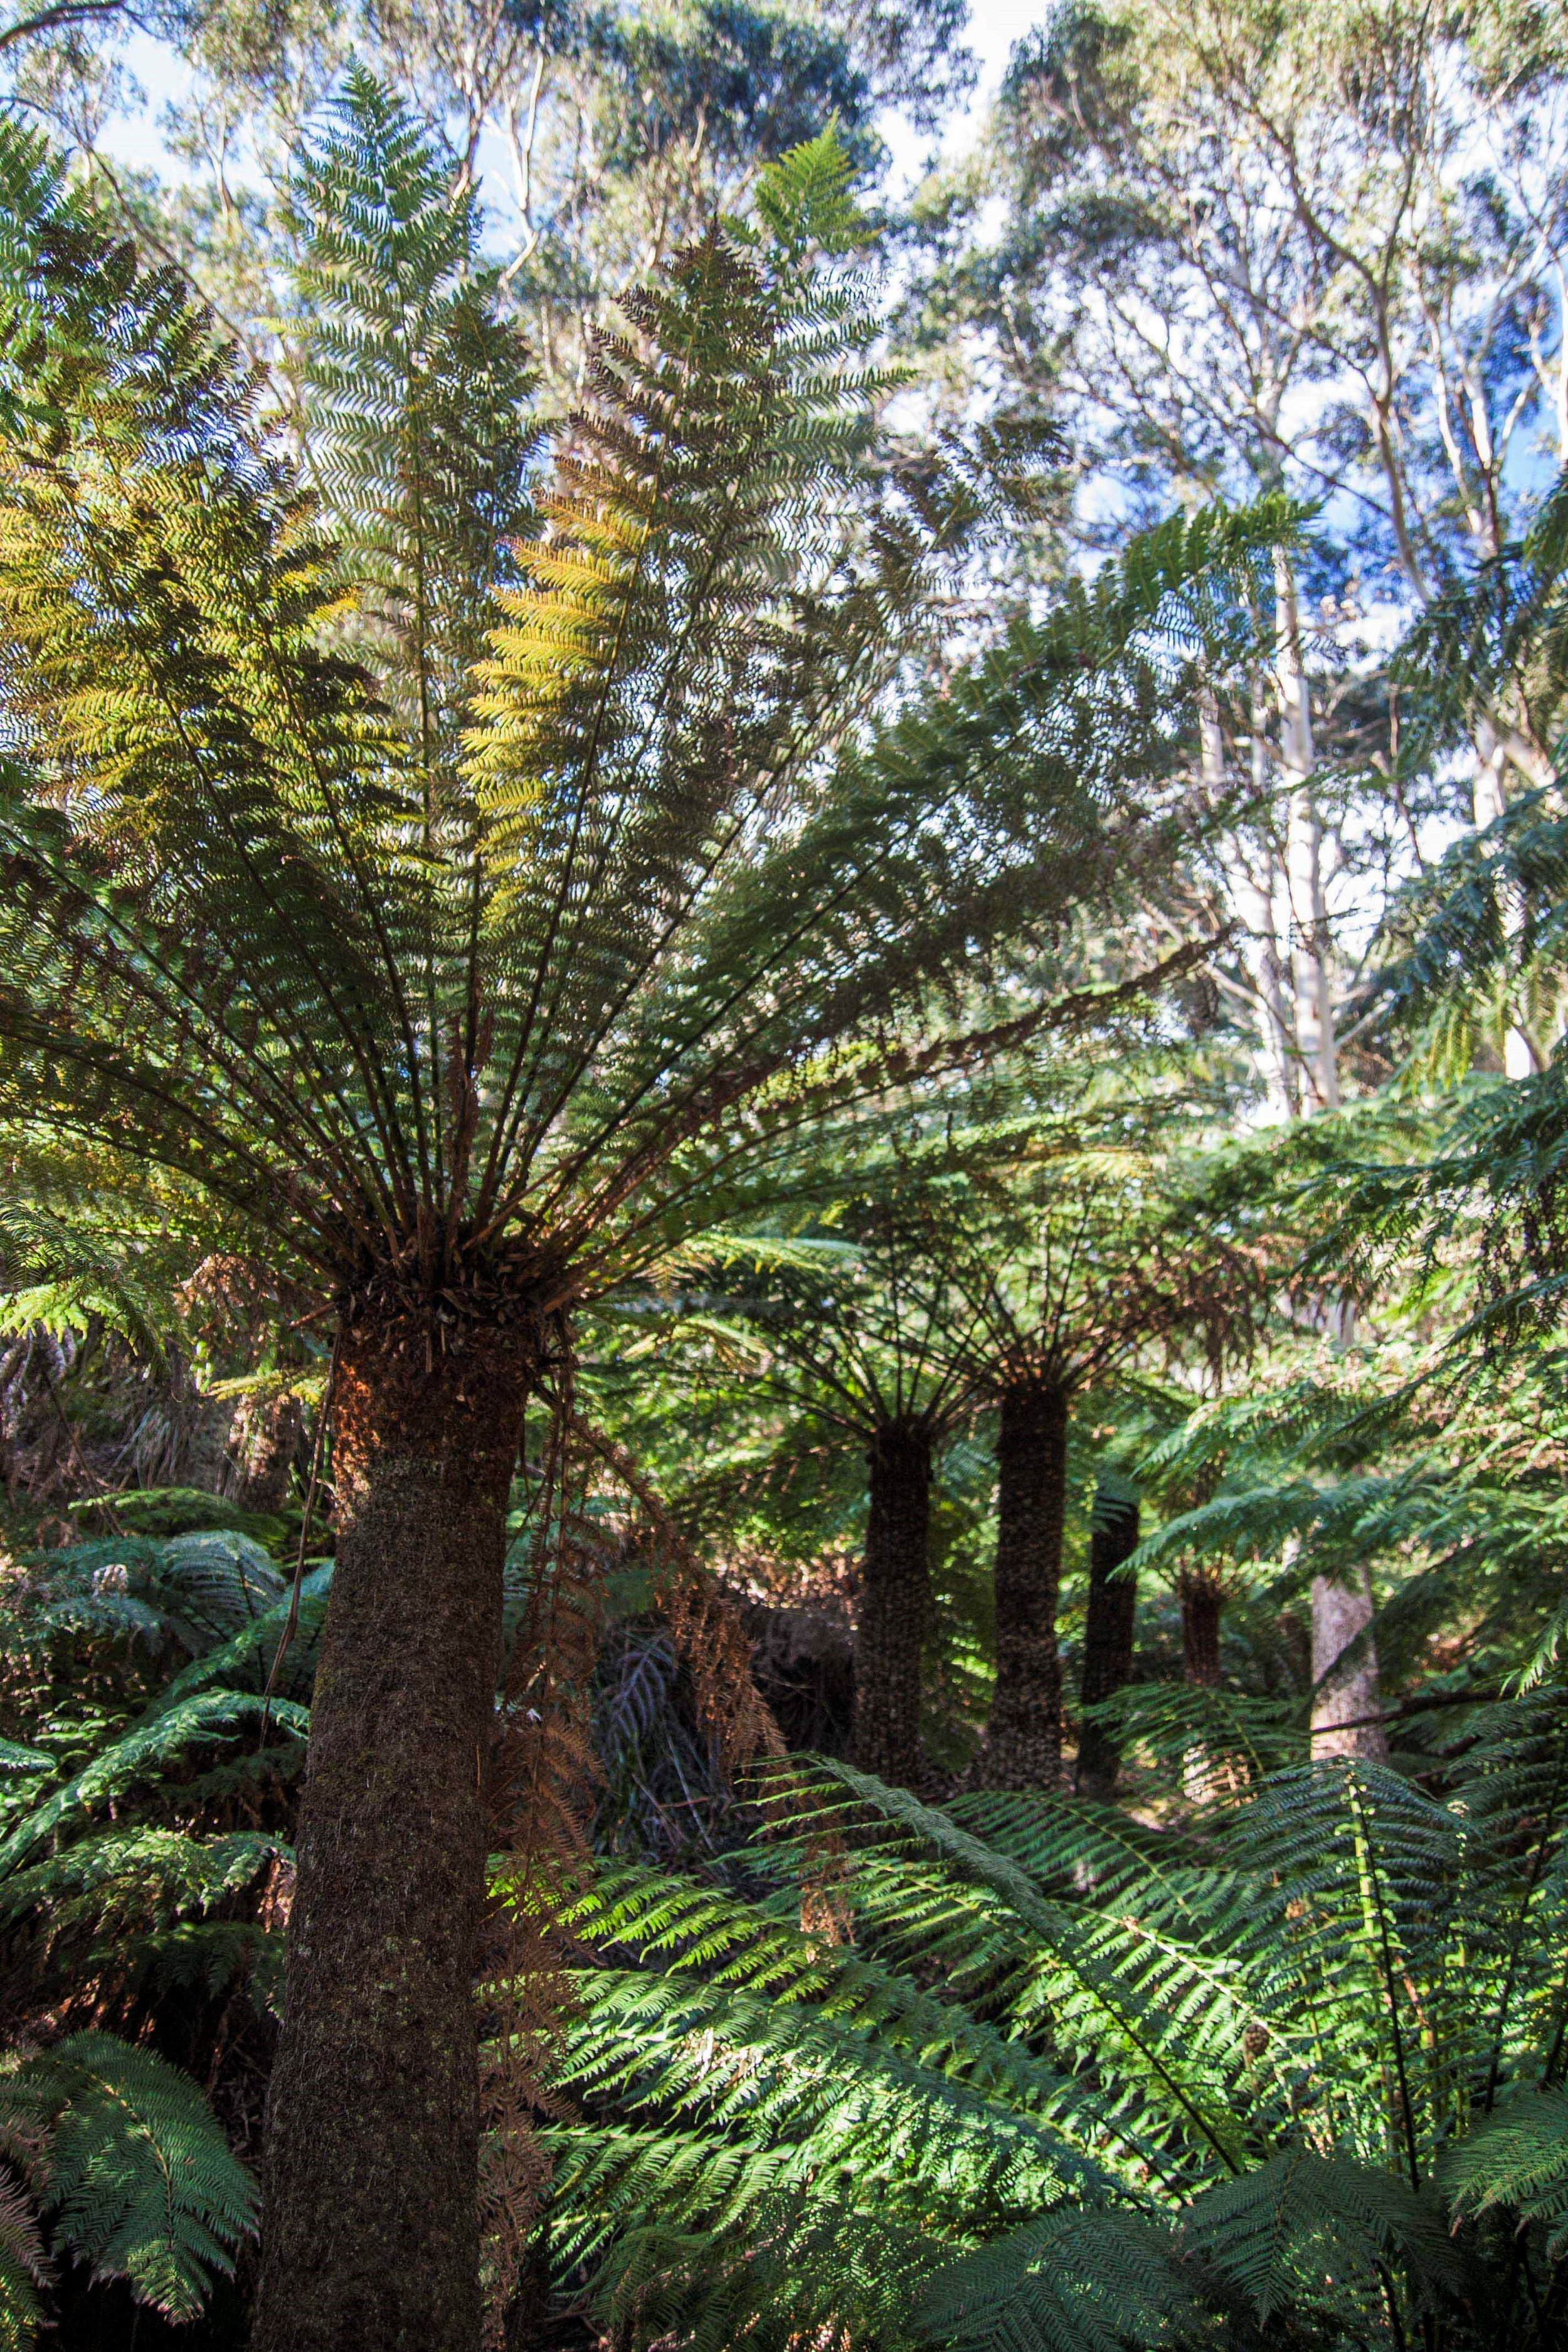 Dicksonia and Cyathea tree ferns in a cool rainforest gully in Strzelecki National Park, Flinders Island, Tasmania, Australia